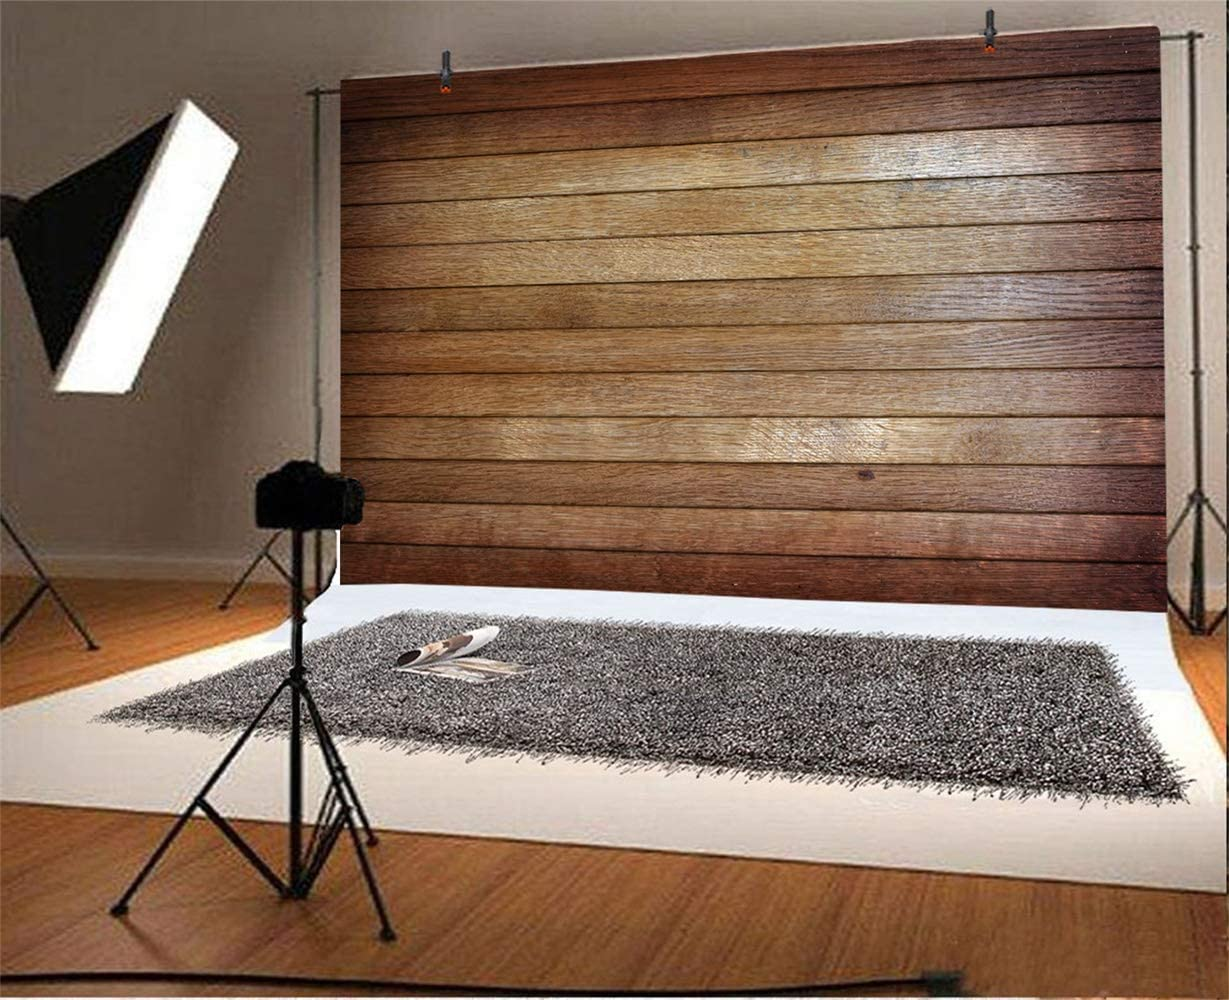 Polyester 8x6ft Grunge Retro Lateral-Cut Wood Texture Plank Photography Background Rustic Vintage Wooden Board Backdrop Children Adult Pets Portrait Shoot Studio Props Nostalgia